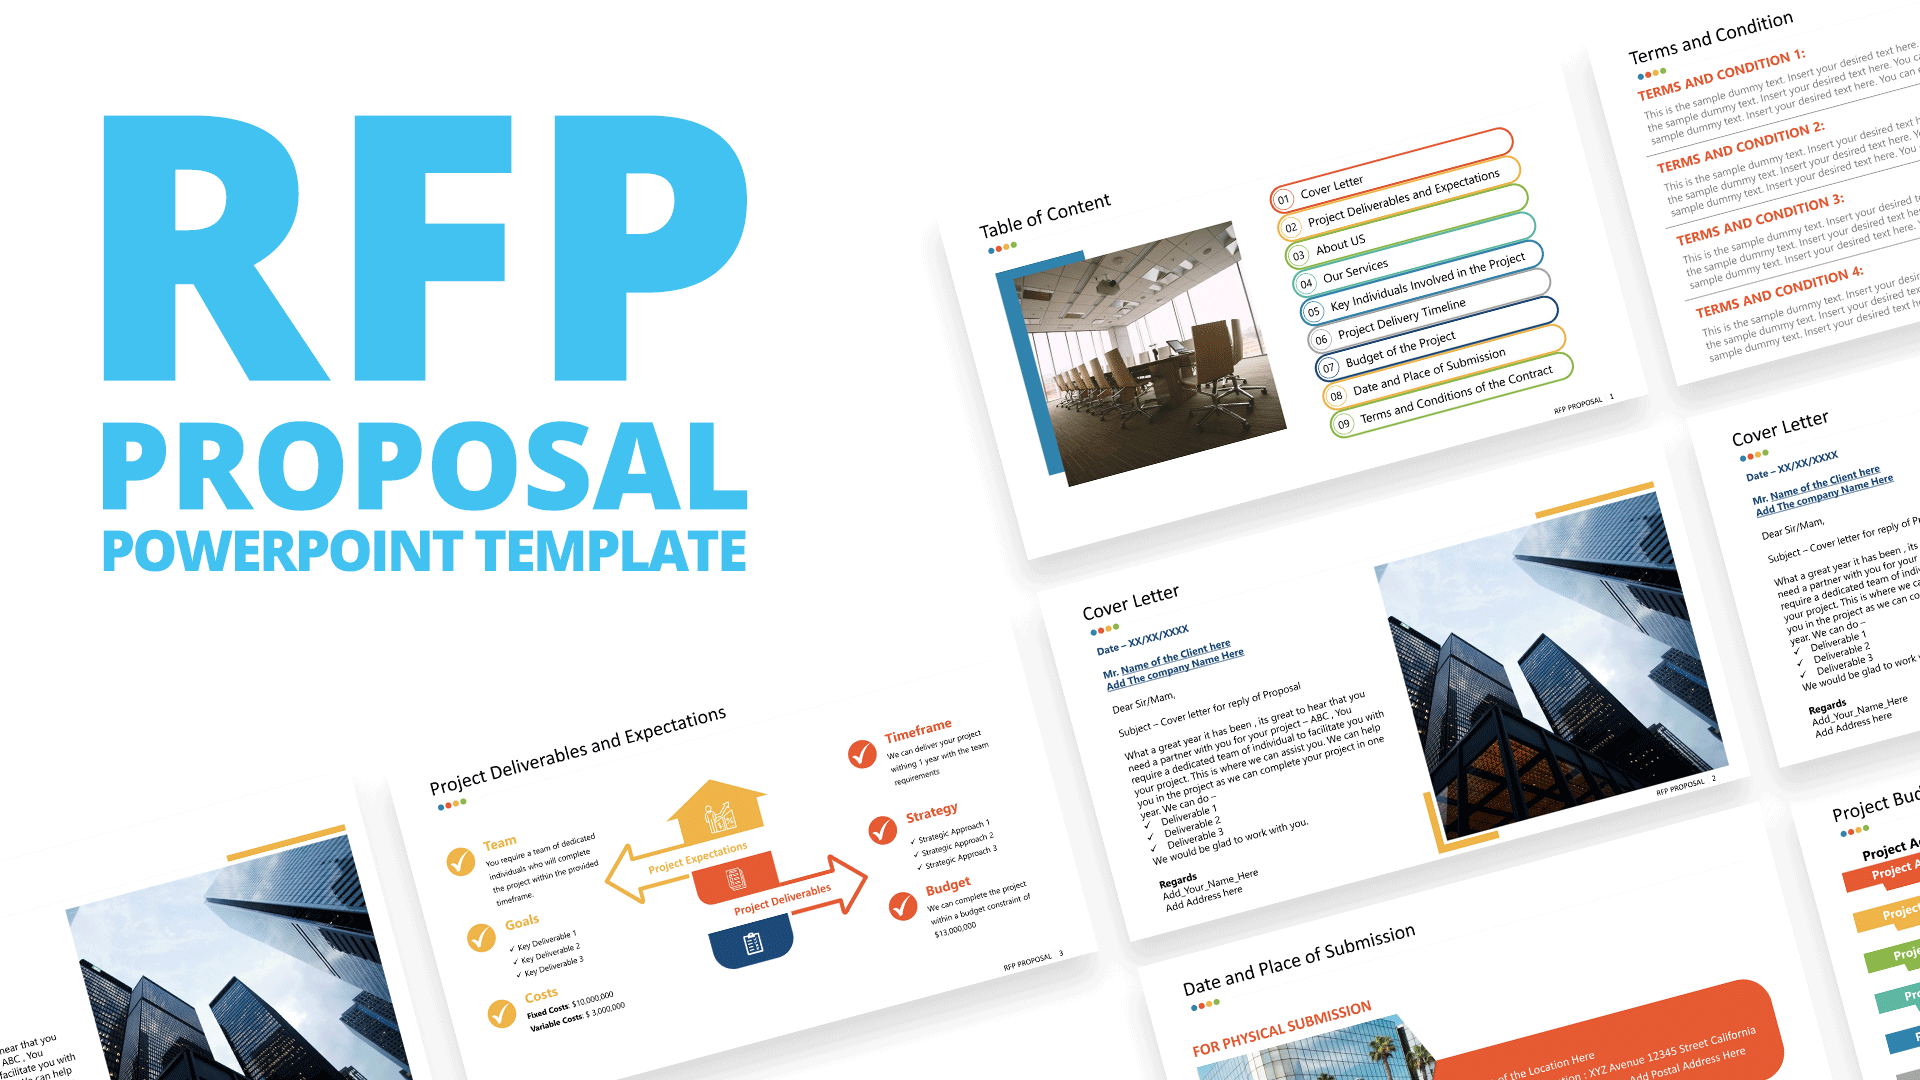 PPT Templates for RFP Proposal